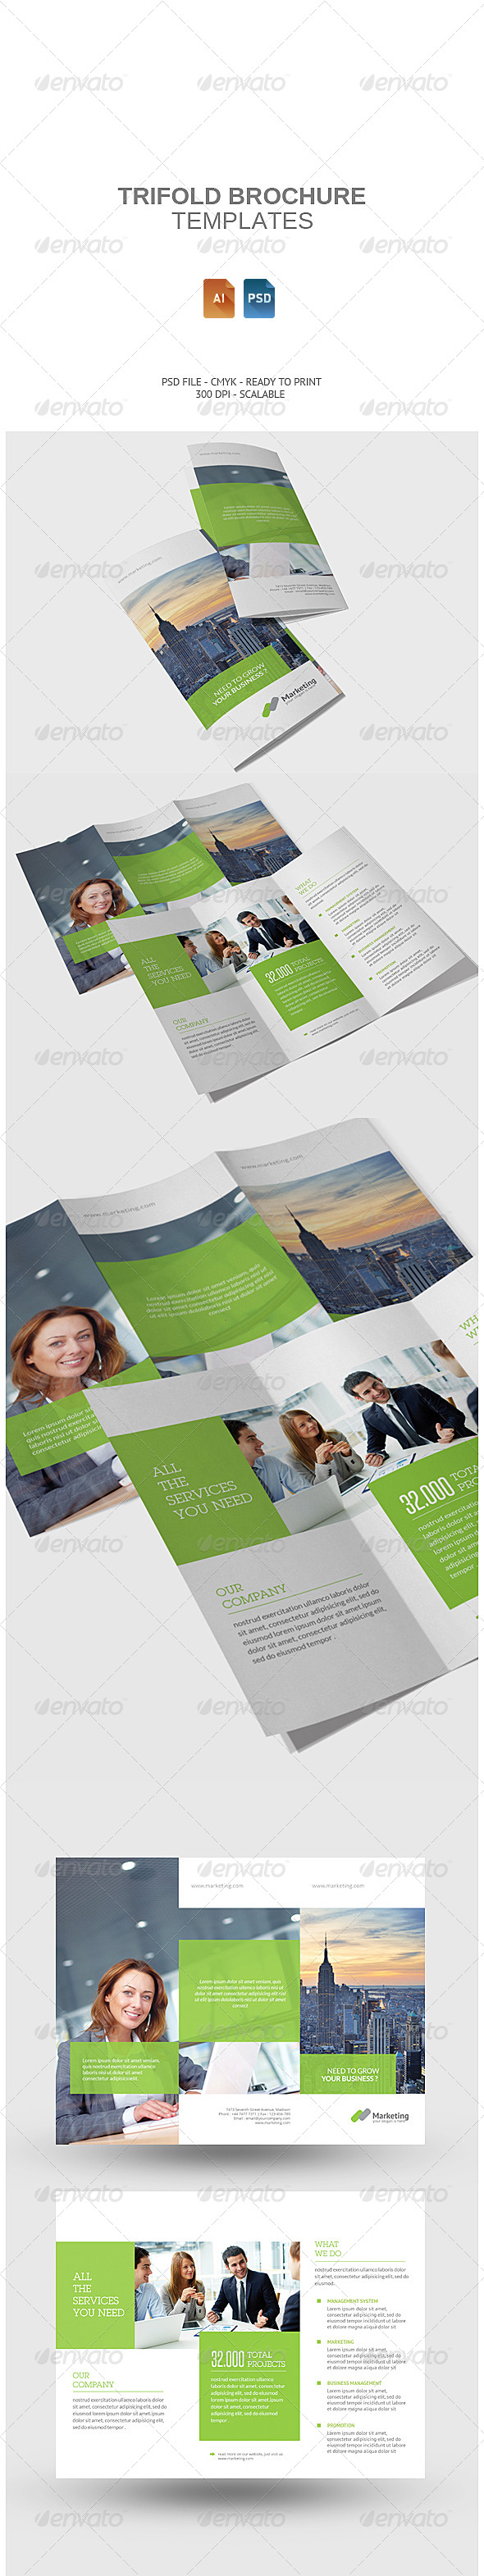 GraphicRiver Corporate Tri-fold Brochure 7871434